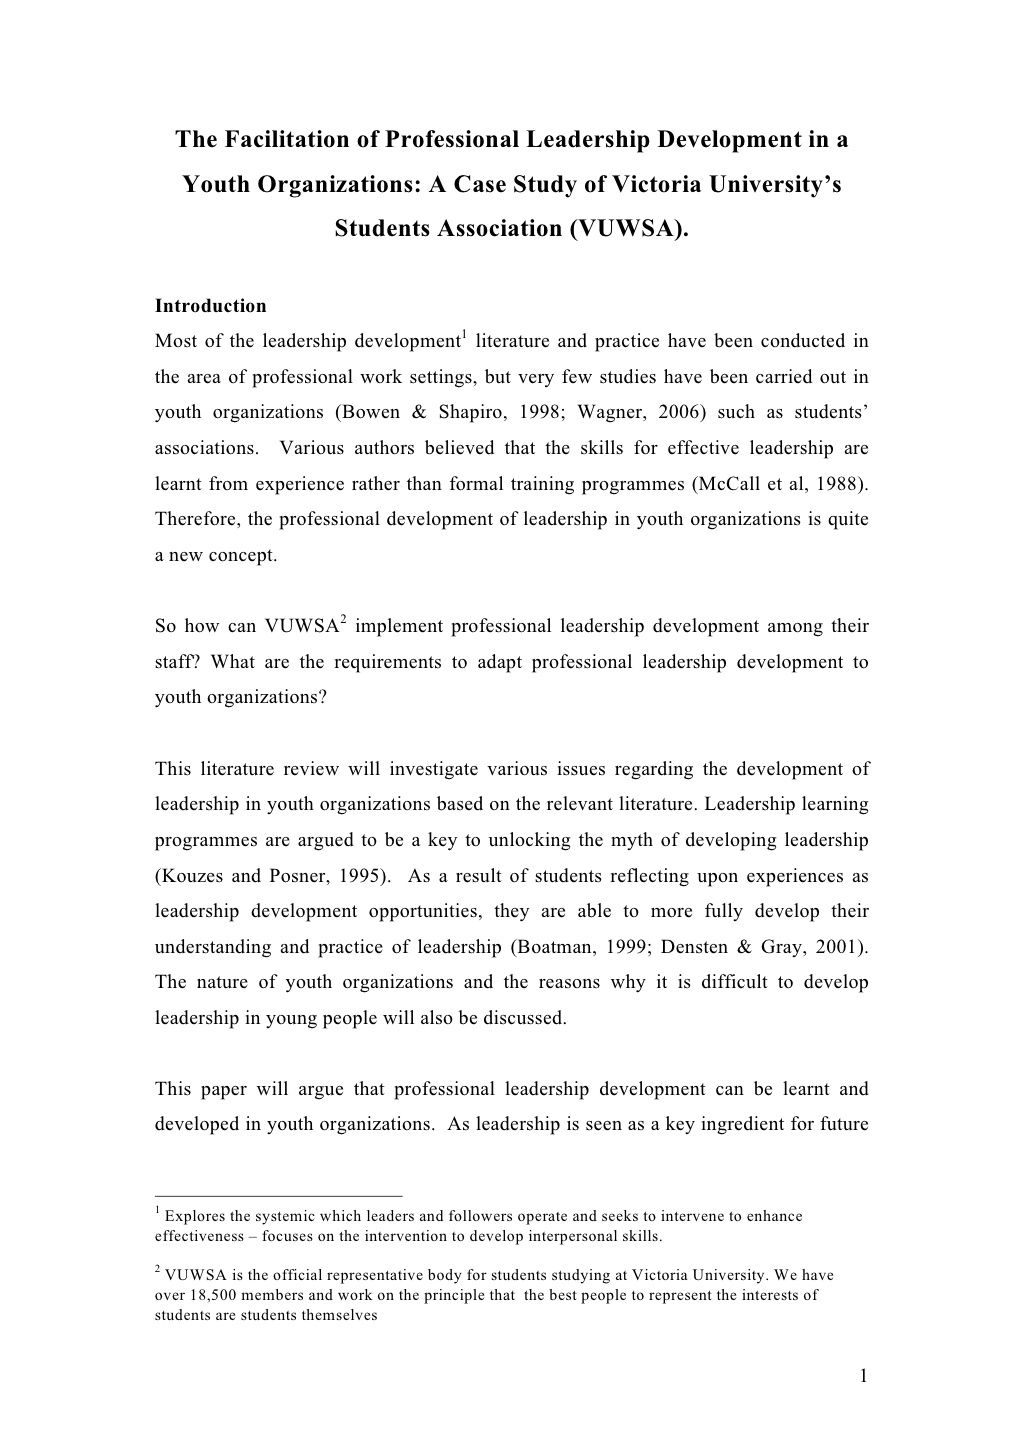 apa style writing dissertation apa style has special formatting  apa style writing dissertation apa style has special formatting rules for the titles of the